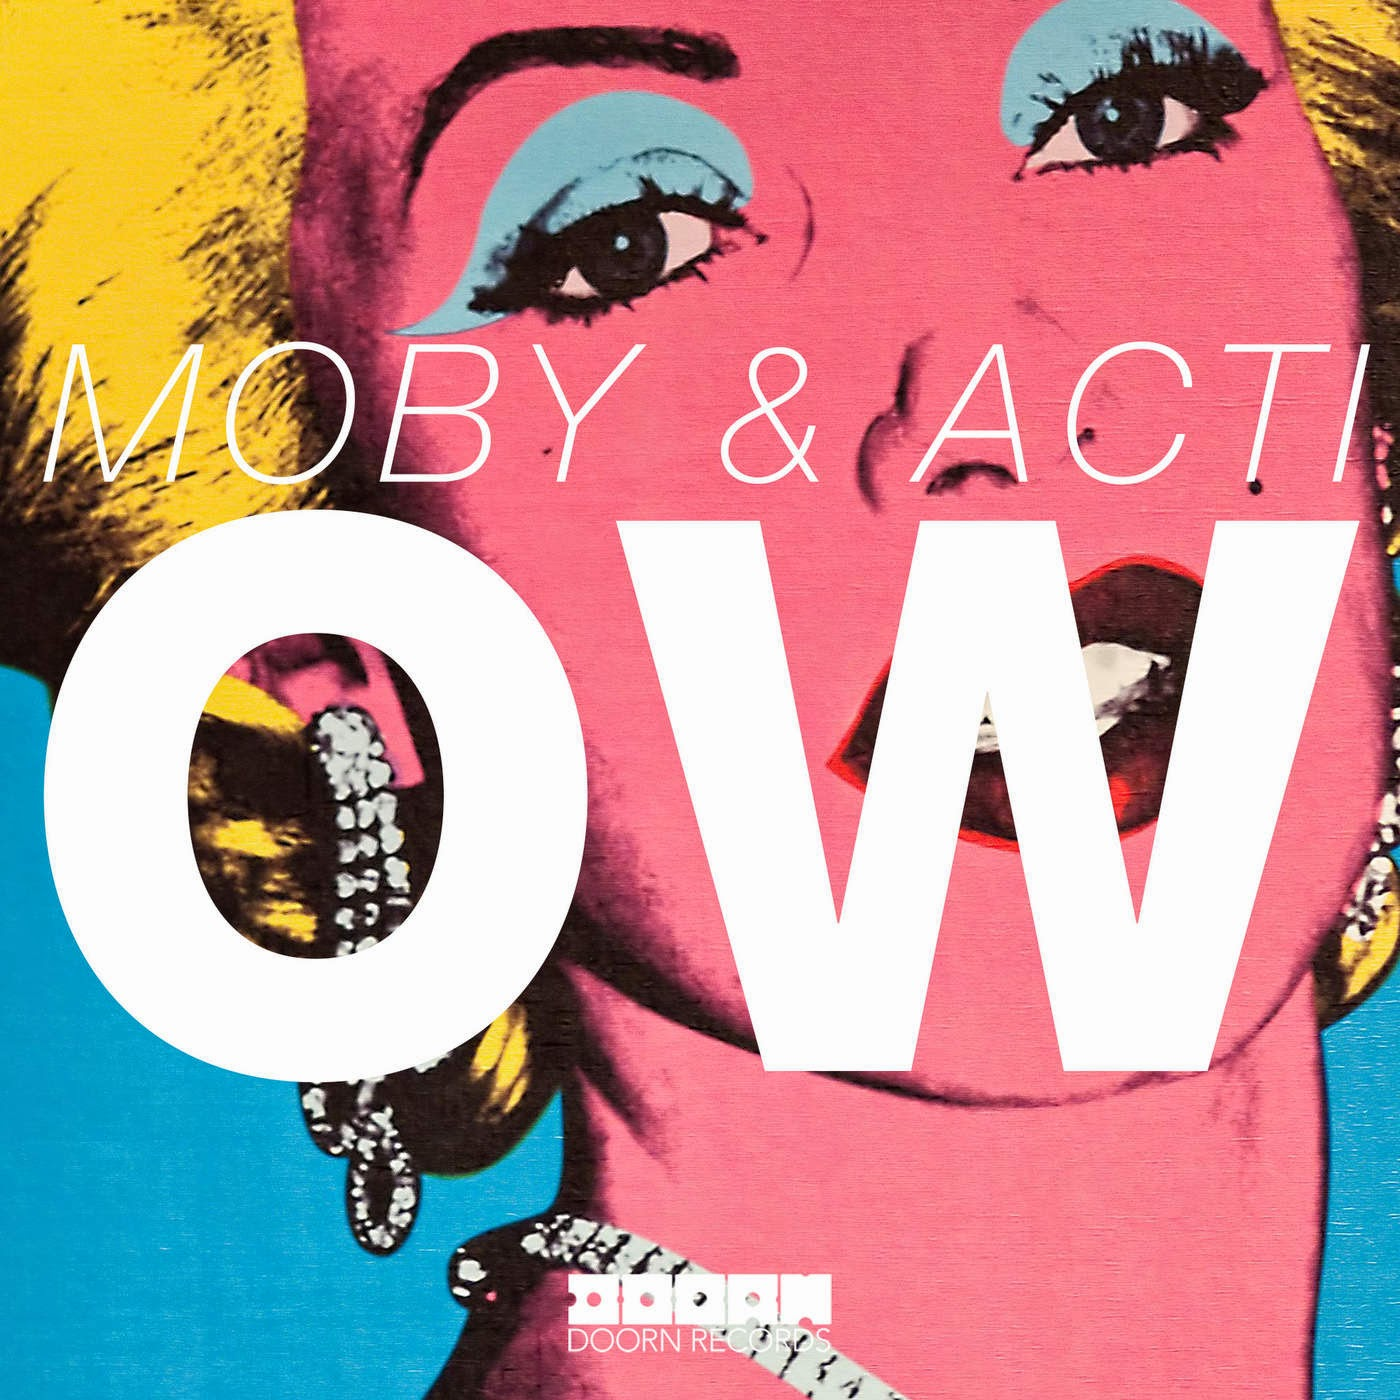 Moby & Acti - Ow - Single  Cover